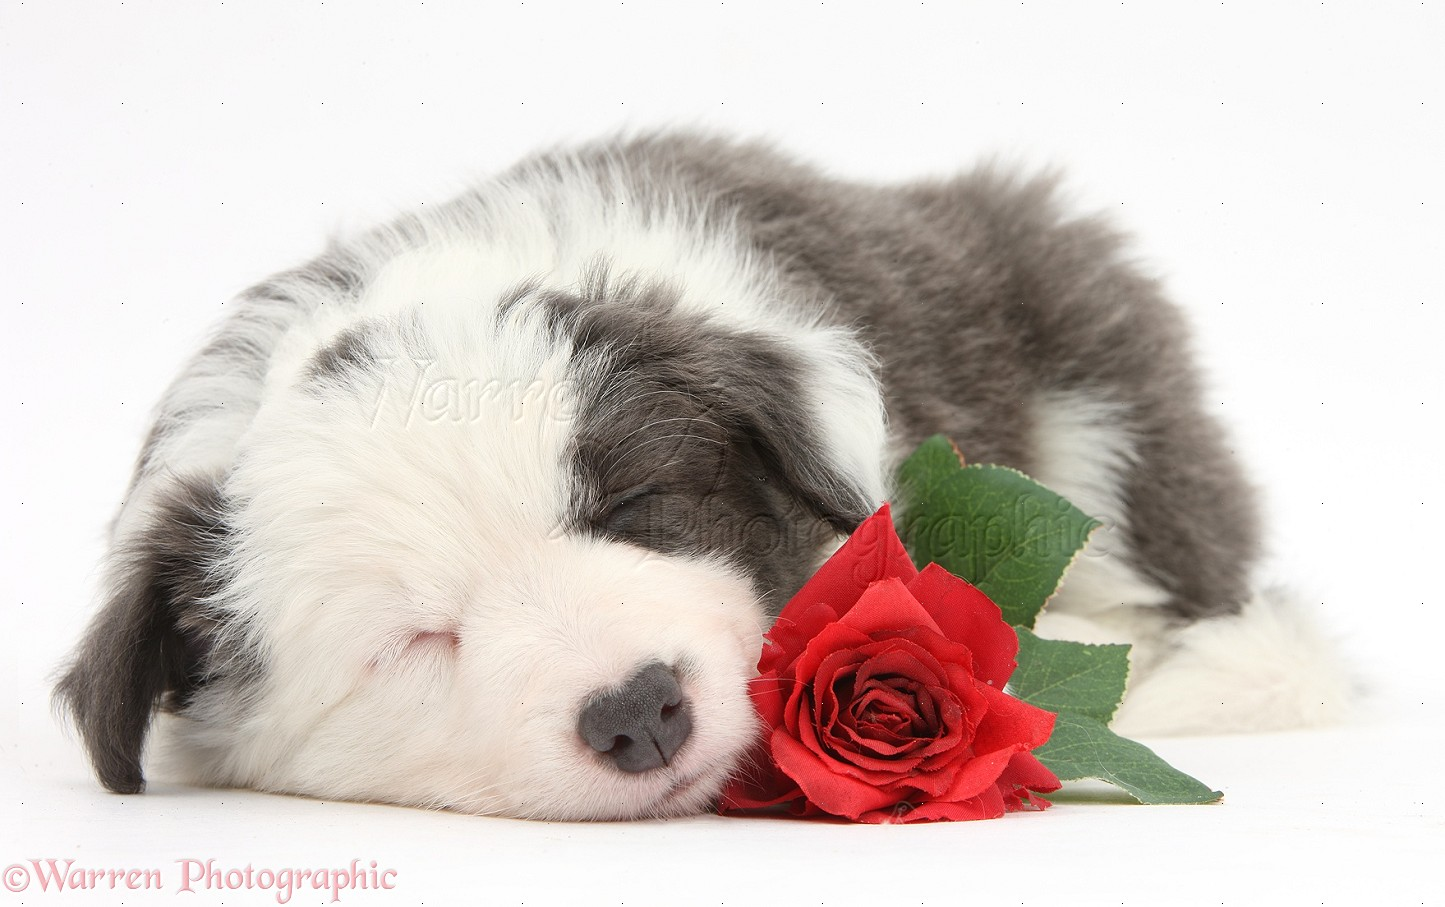 dog: cute sleepy border collie puppy with red rose photo wp39518